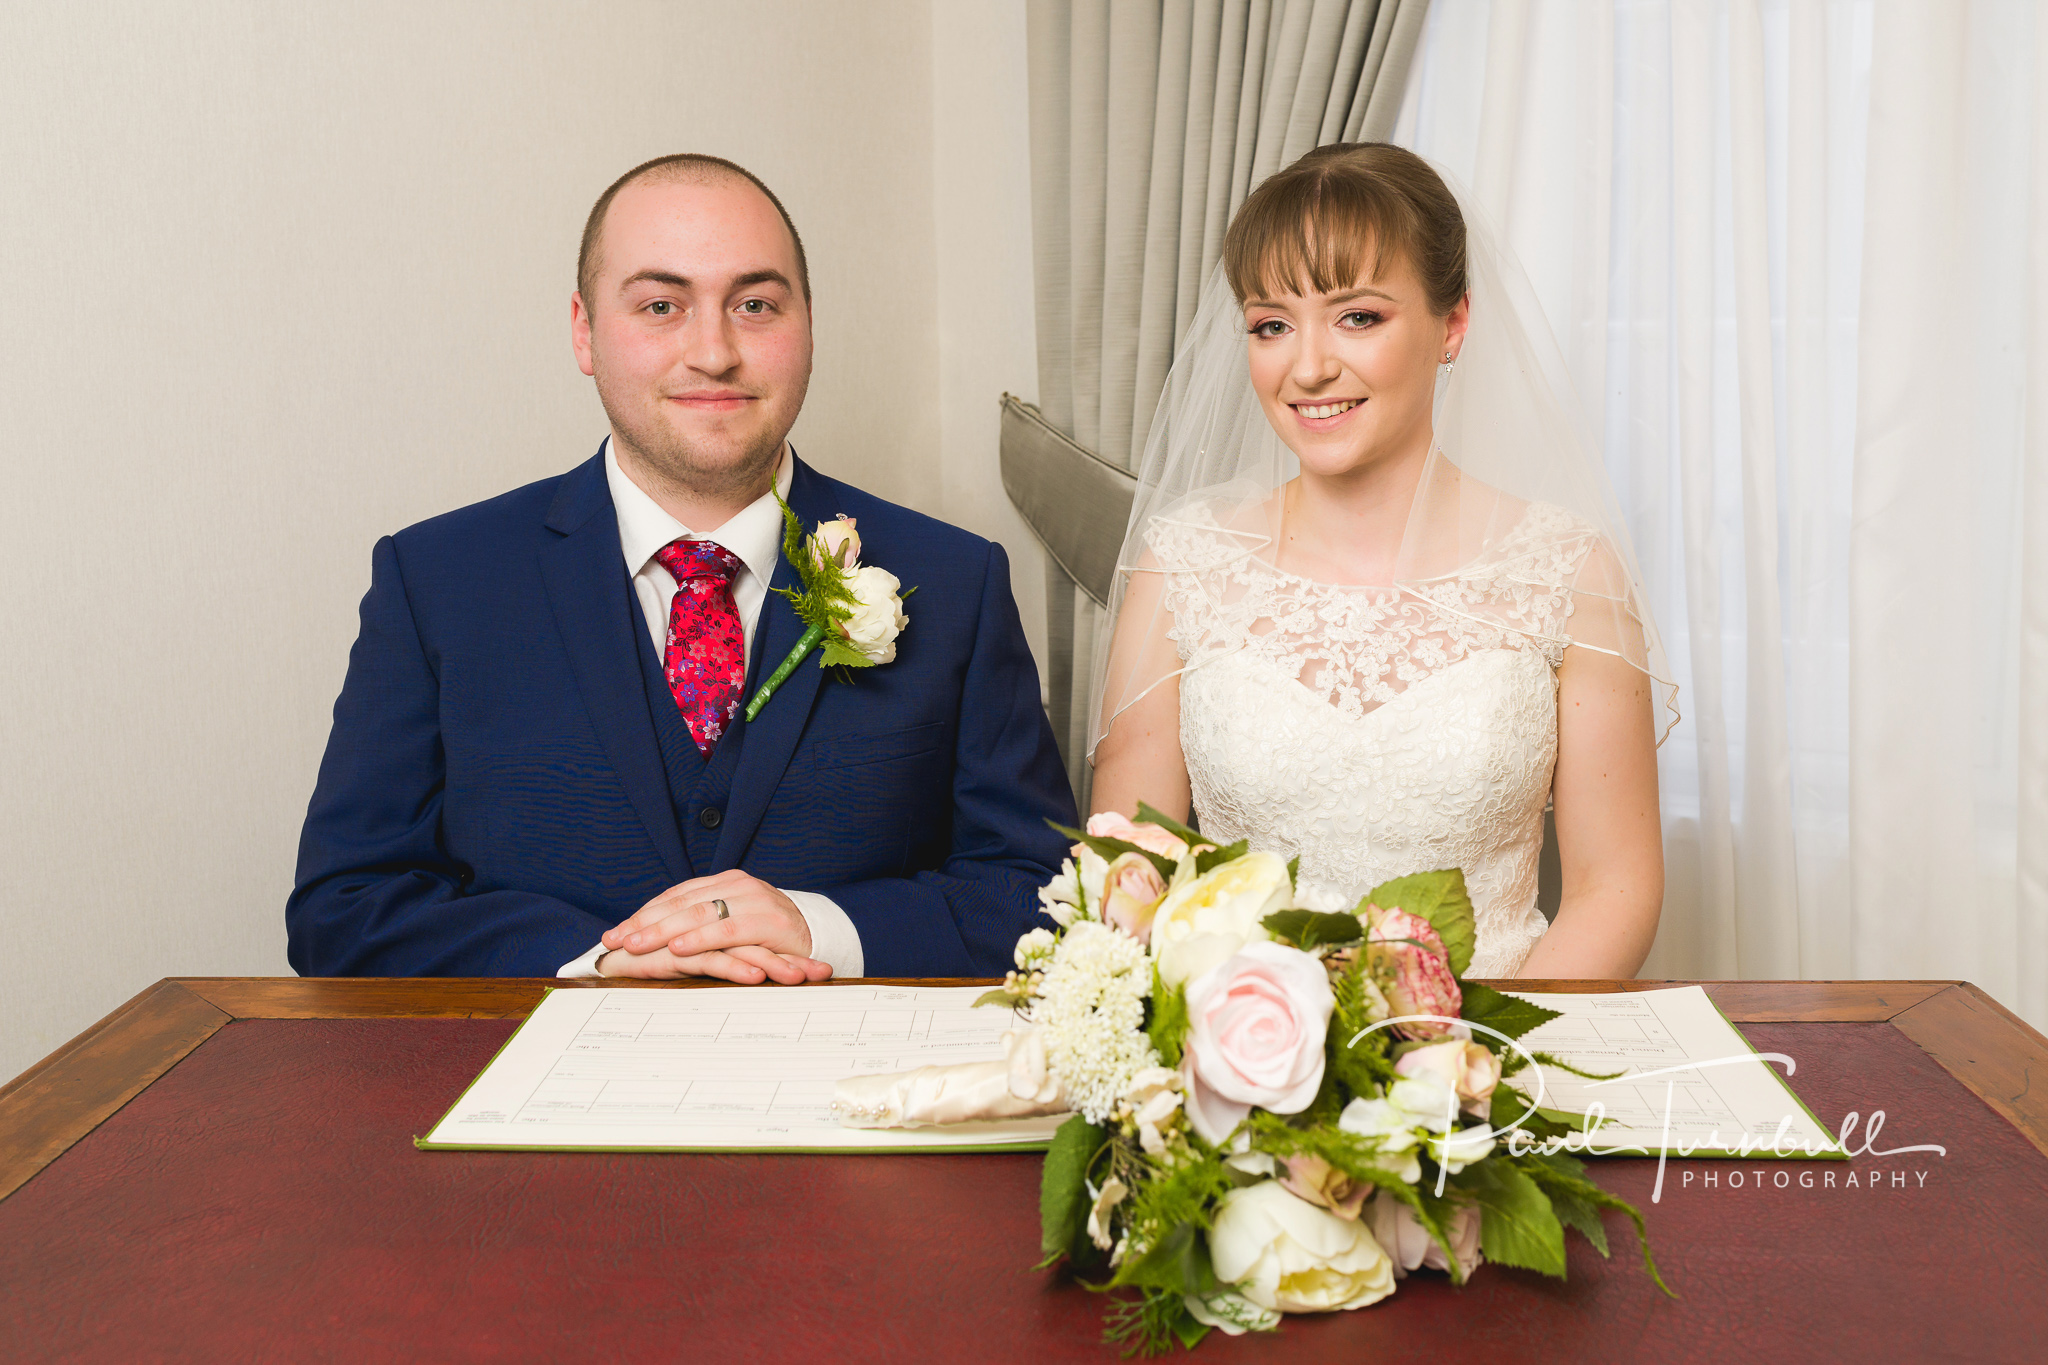 wedding-photographer-pontefract-yorkshire-laura-keanu-039.jpg